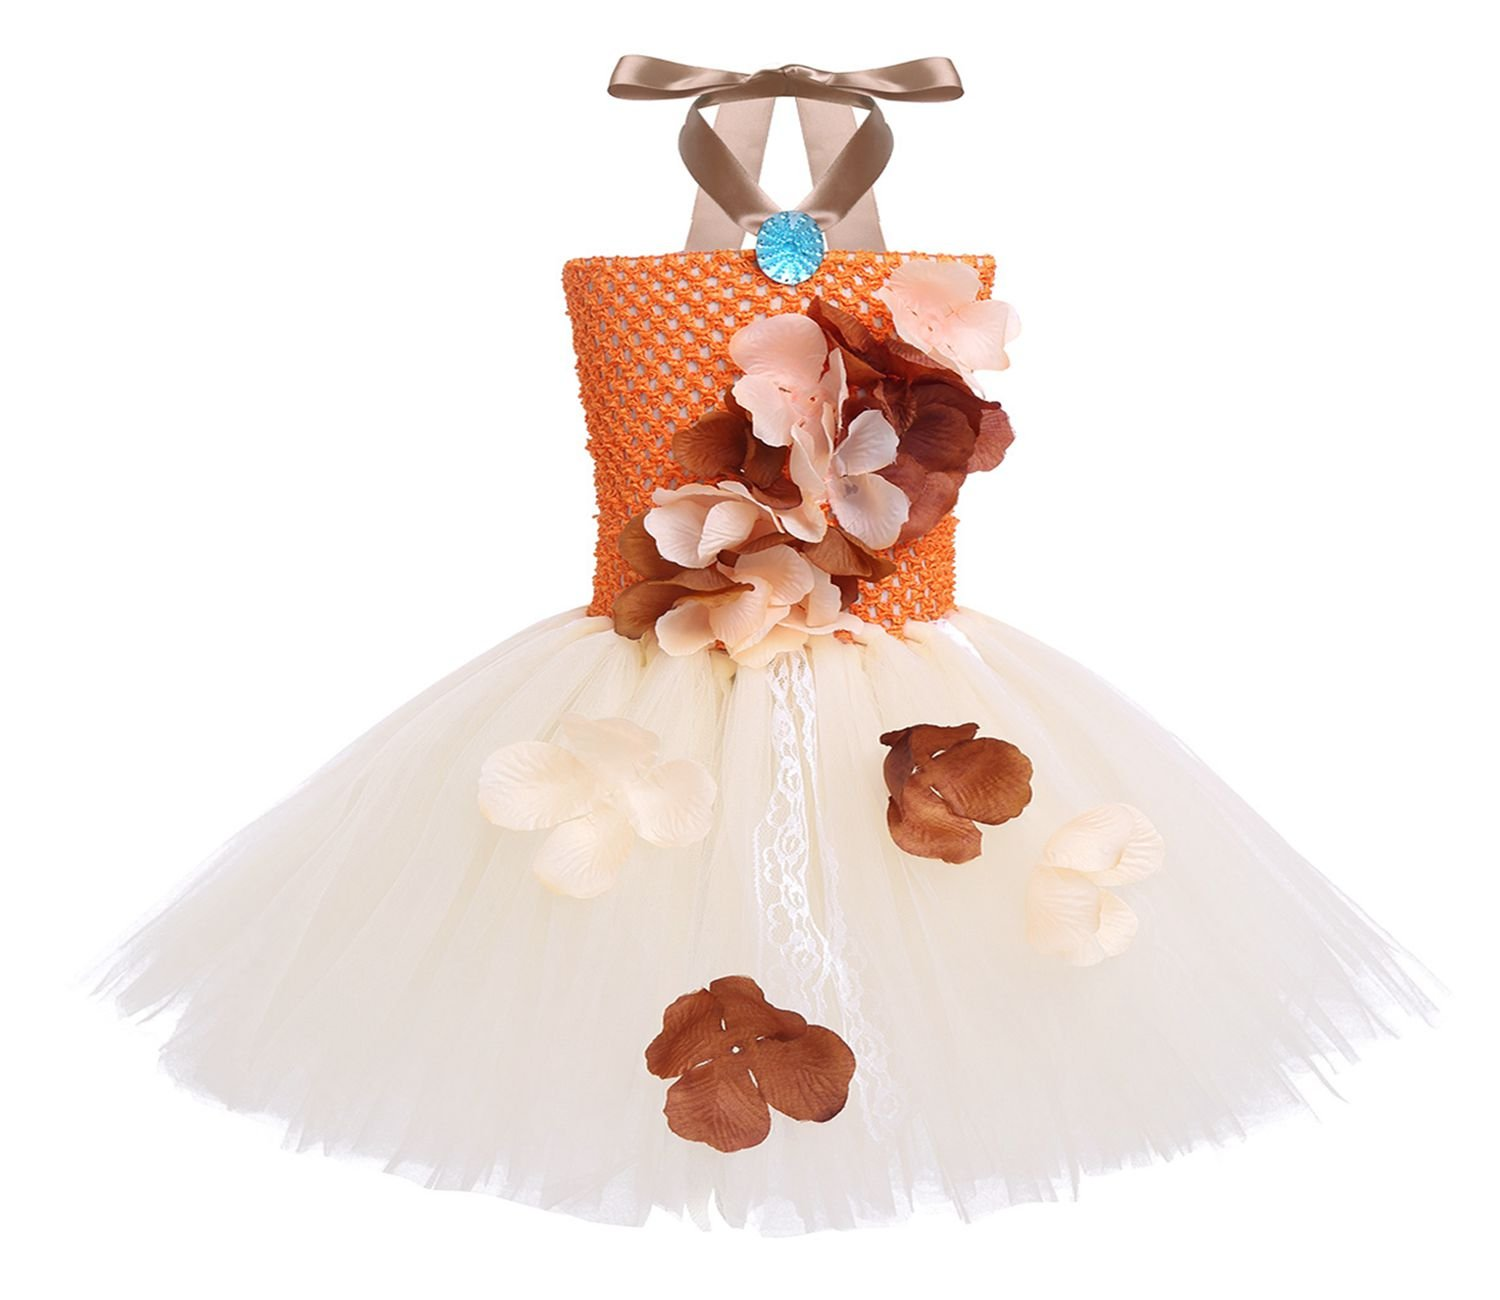 CHICTRY Girls Kids Colorful Birthday Costumes Holiday Moana Tutus Outfit Dress Ballet with Headband Set (7-8, Orange Floral Tutu)